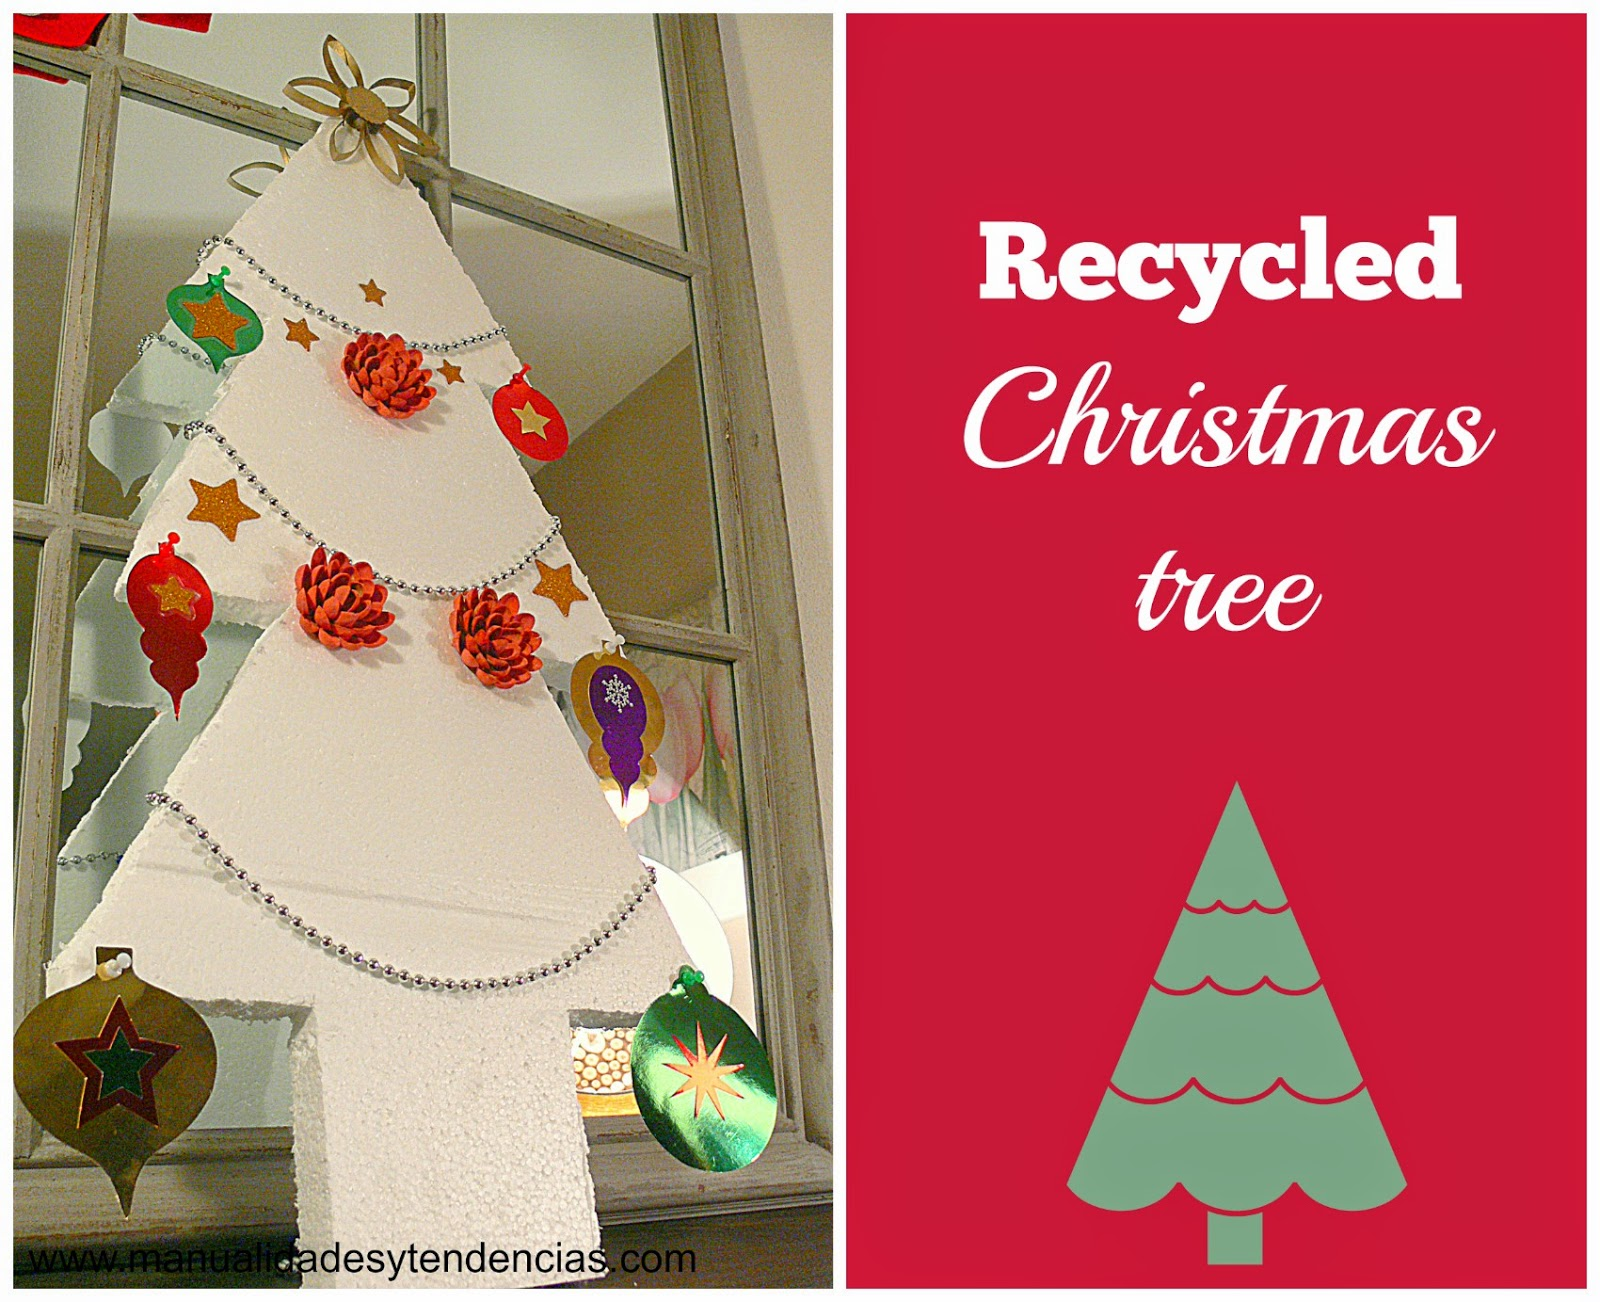 Recycled Styrofoam Christmas tree